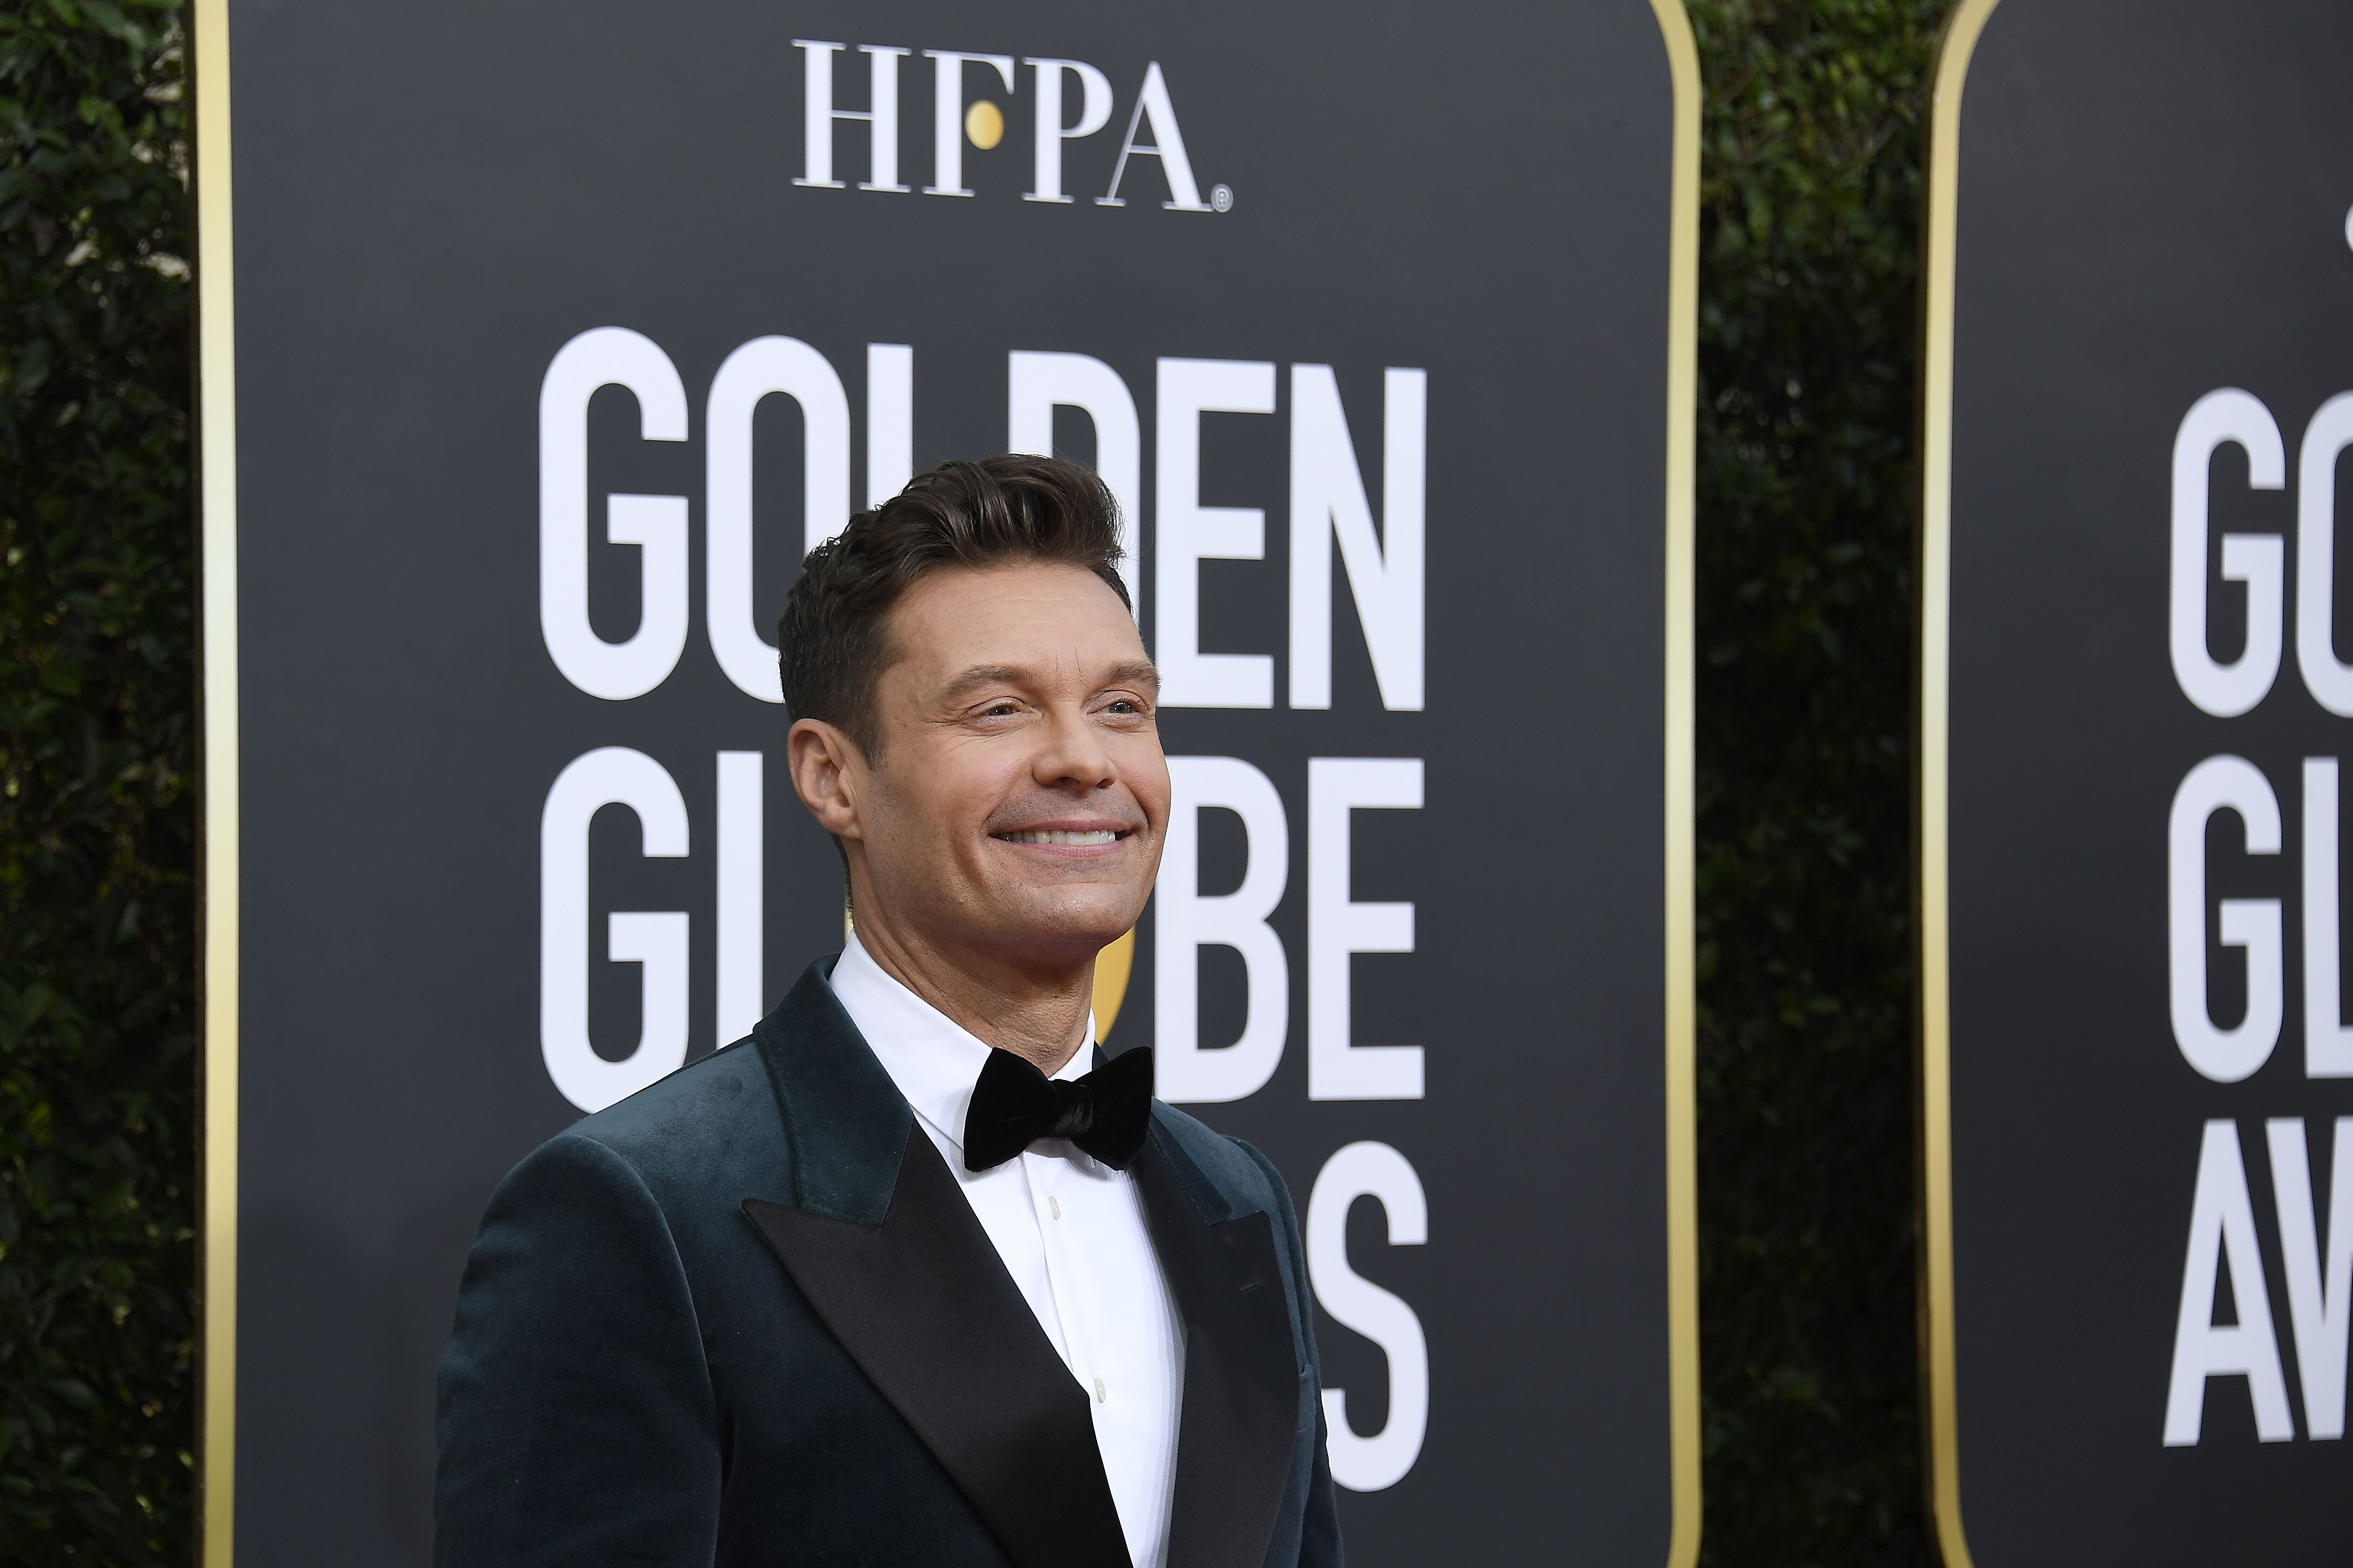 Ryan Seacrest arrives to the 77th Annual Golden Globe Awards held at the Beverly Hilton Hotel on January 5, 2020. | Source: Getty Images